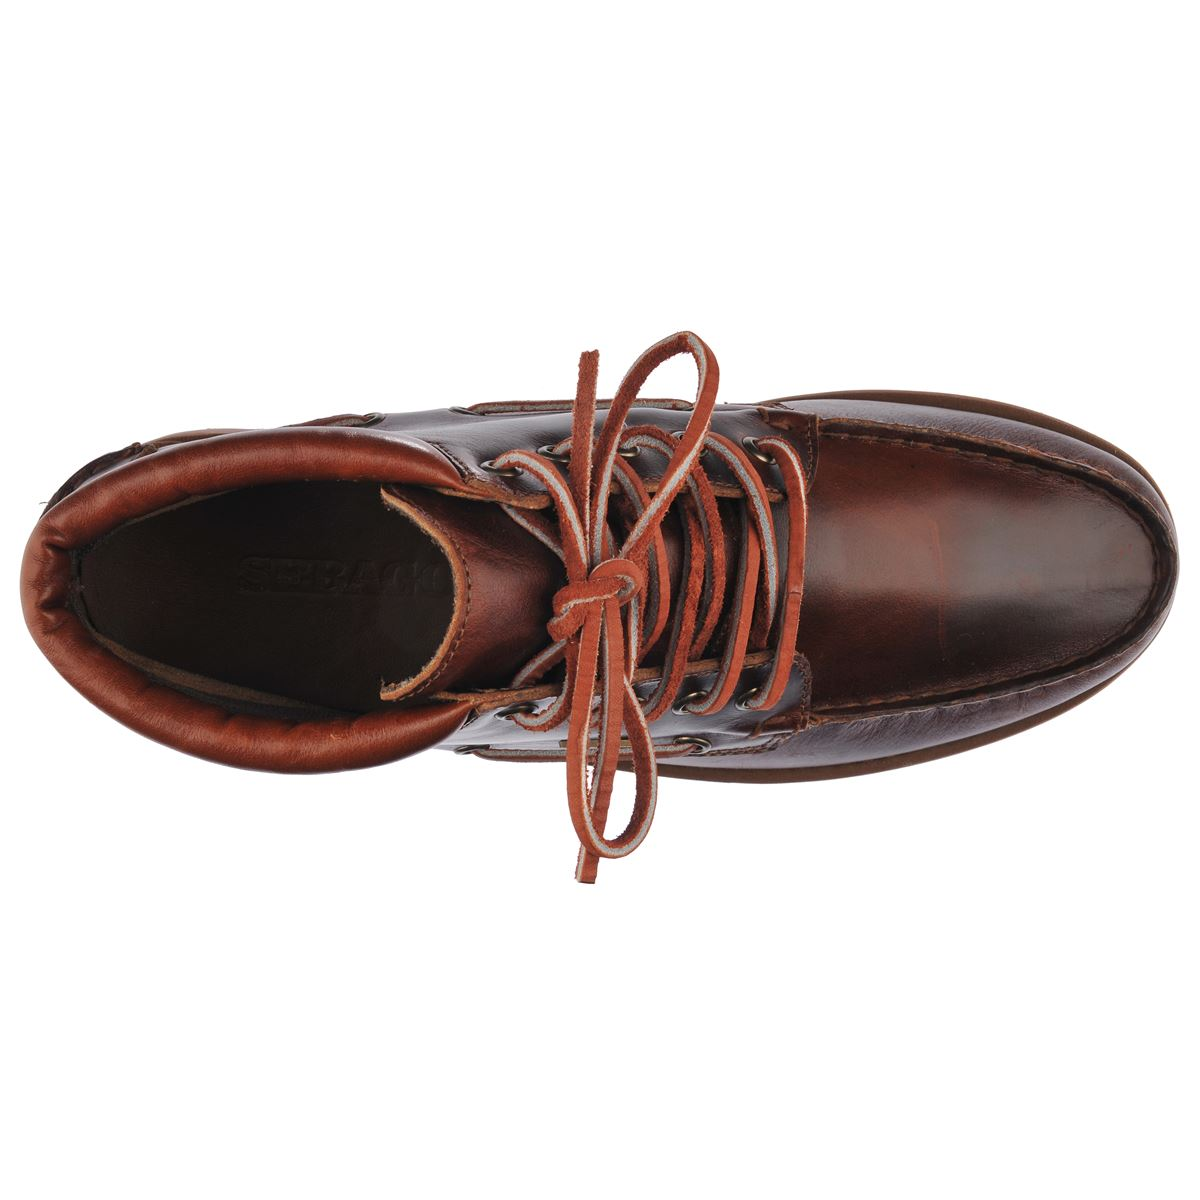 RANGER MID WATERPROOF - BROWN GUM